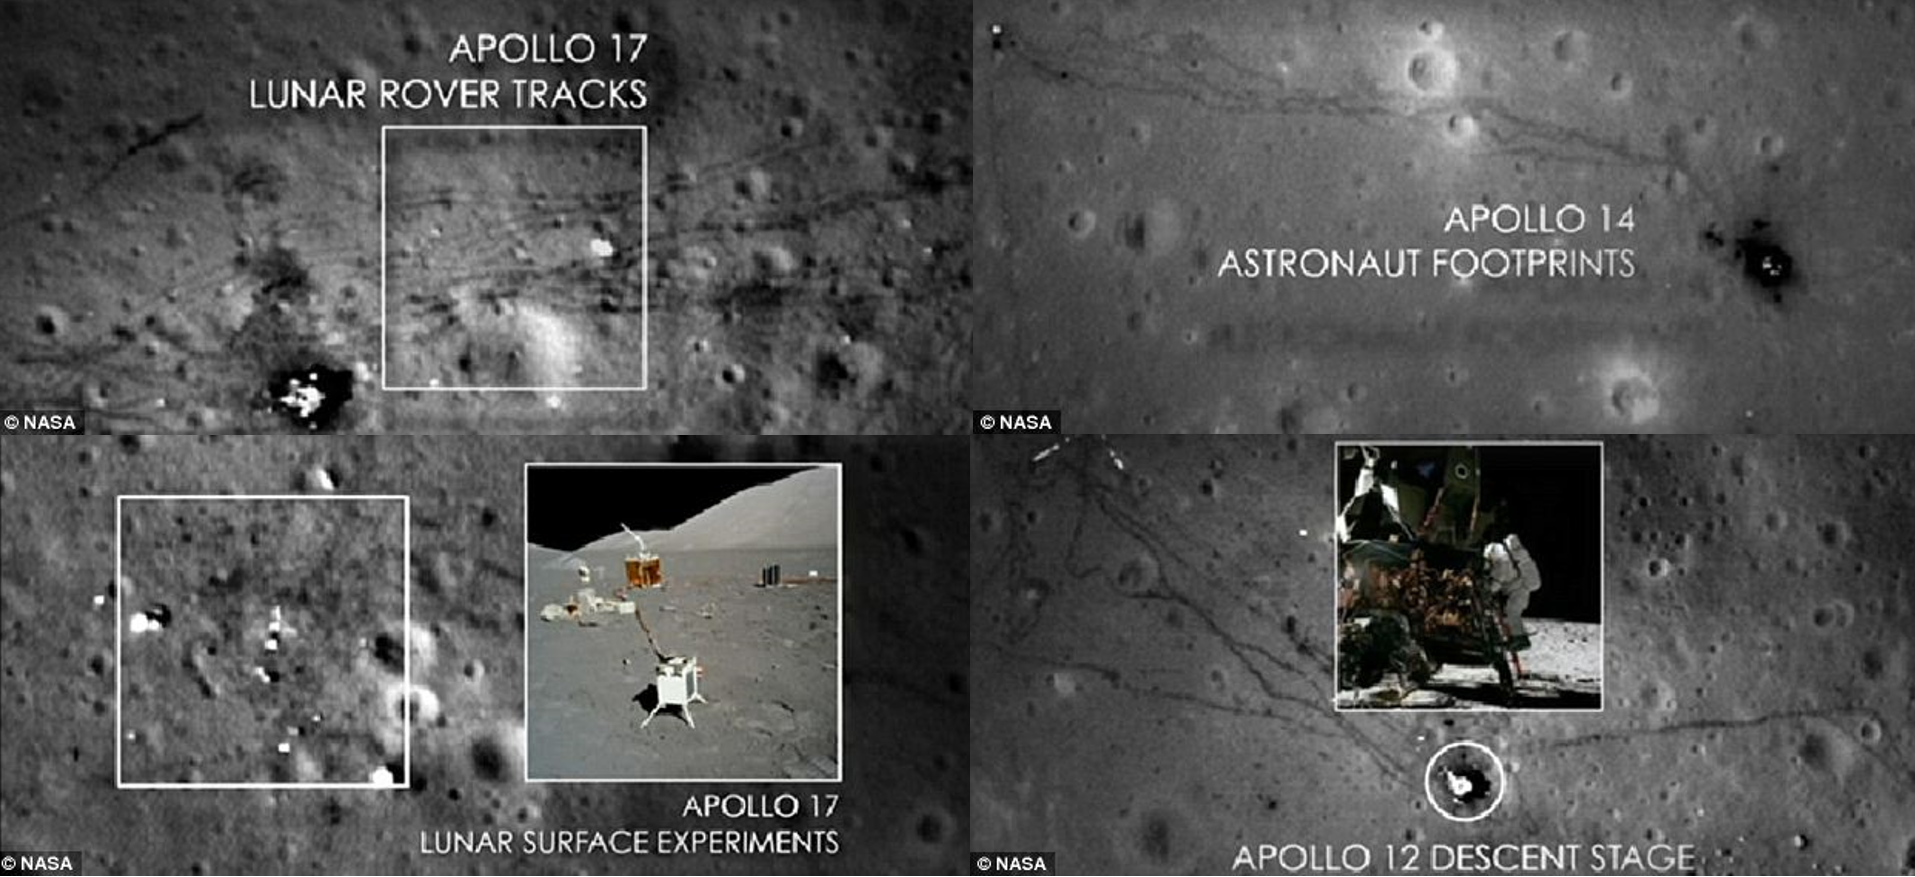 Four Images From NASA Clearly Showing The Surface Of Moon With Astronaut